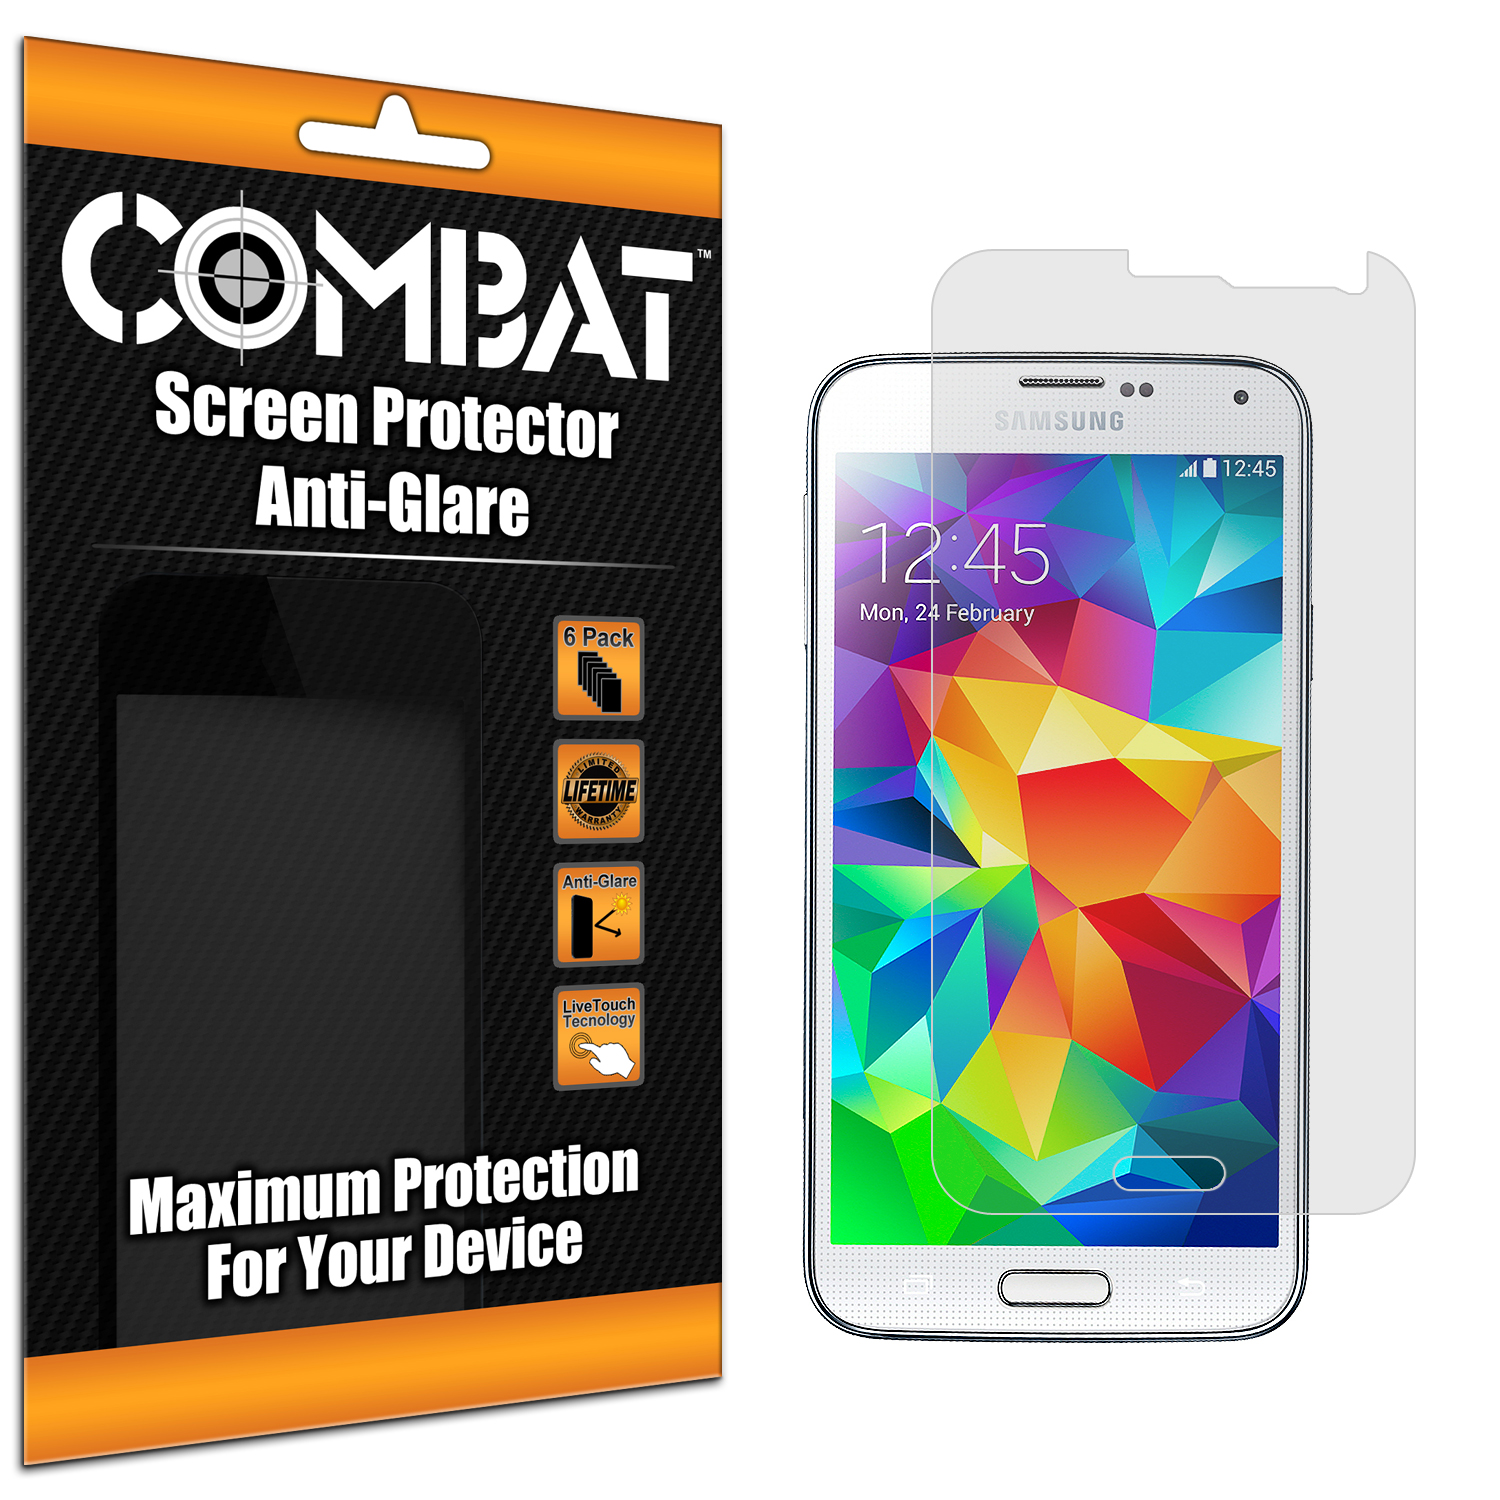 Samsung Galaxy S5 Combat 6 Pack Anti-Glare Matte Screen Protector